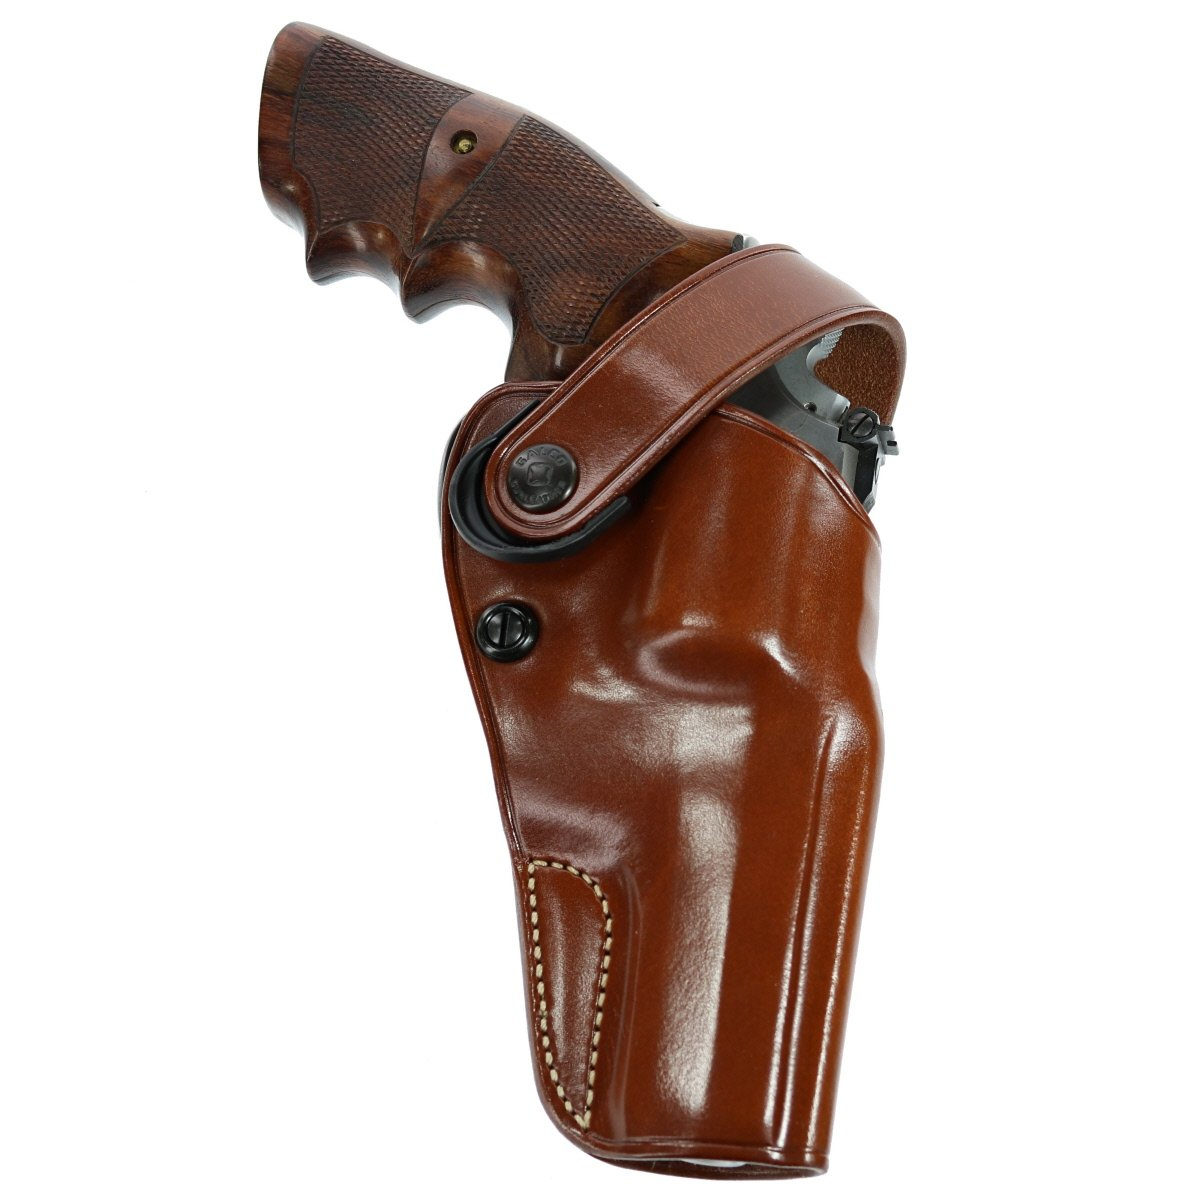 Galco DAO126 Revolver Holster Fits Smith Wesson N Frame 610, 625, 627, 629  4 Inch